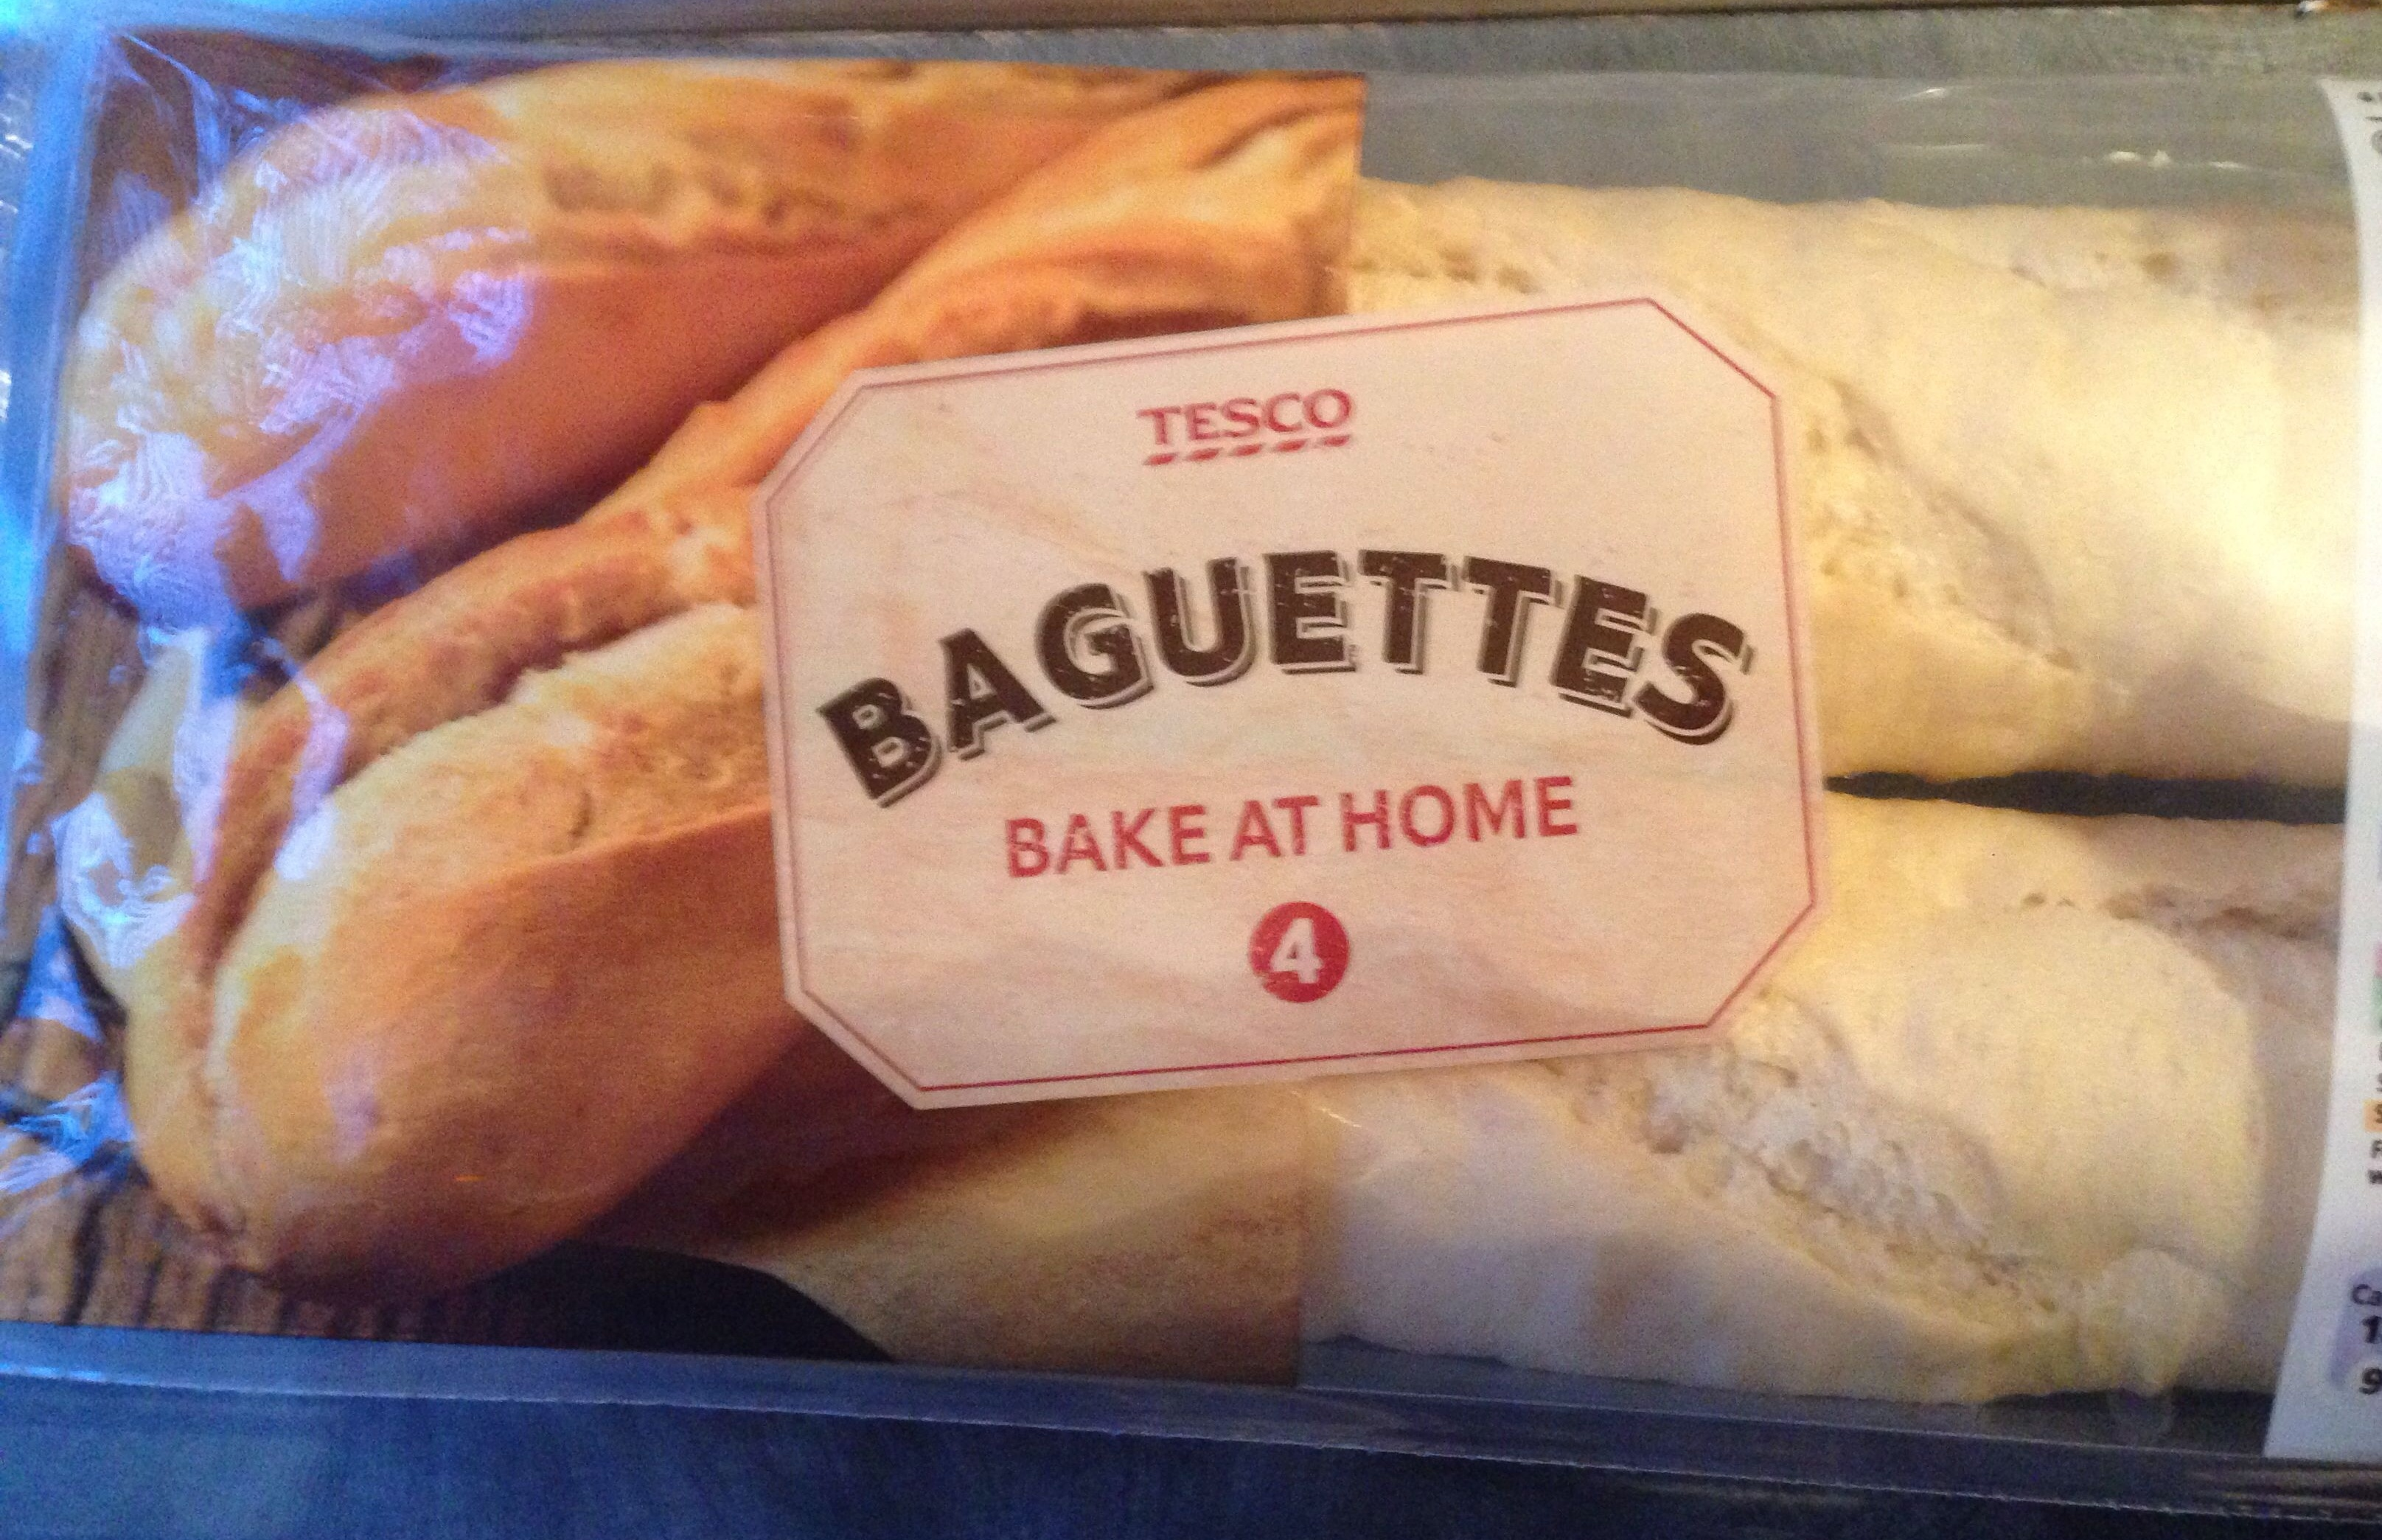 Bake at home baguettes - Product